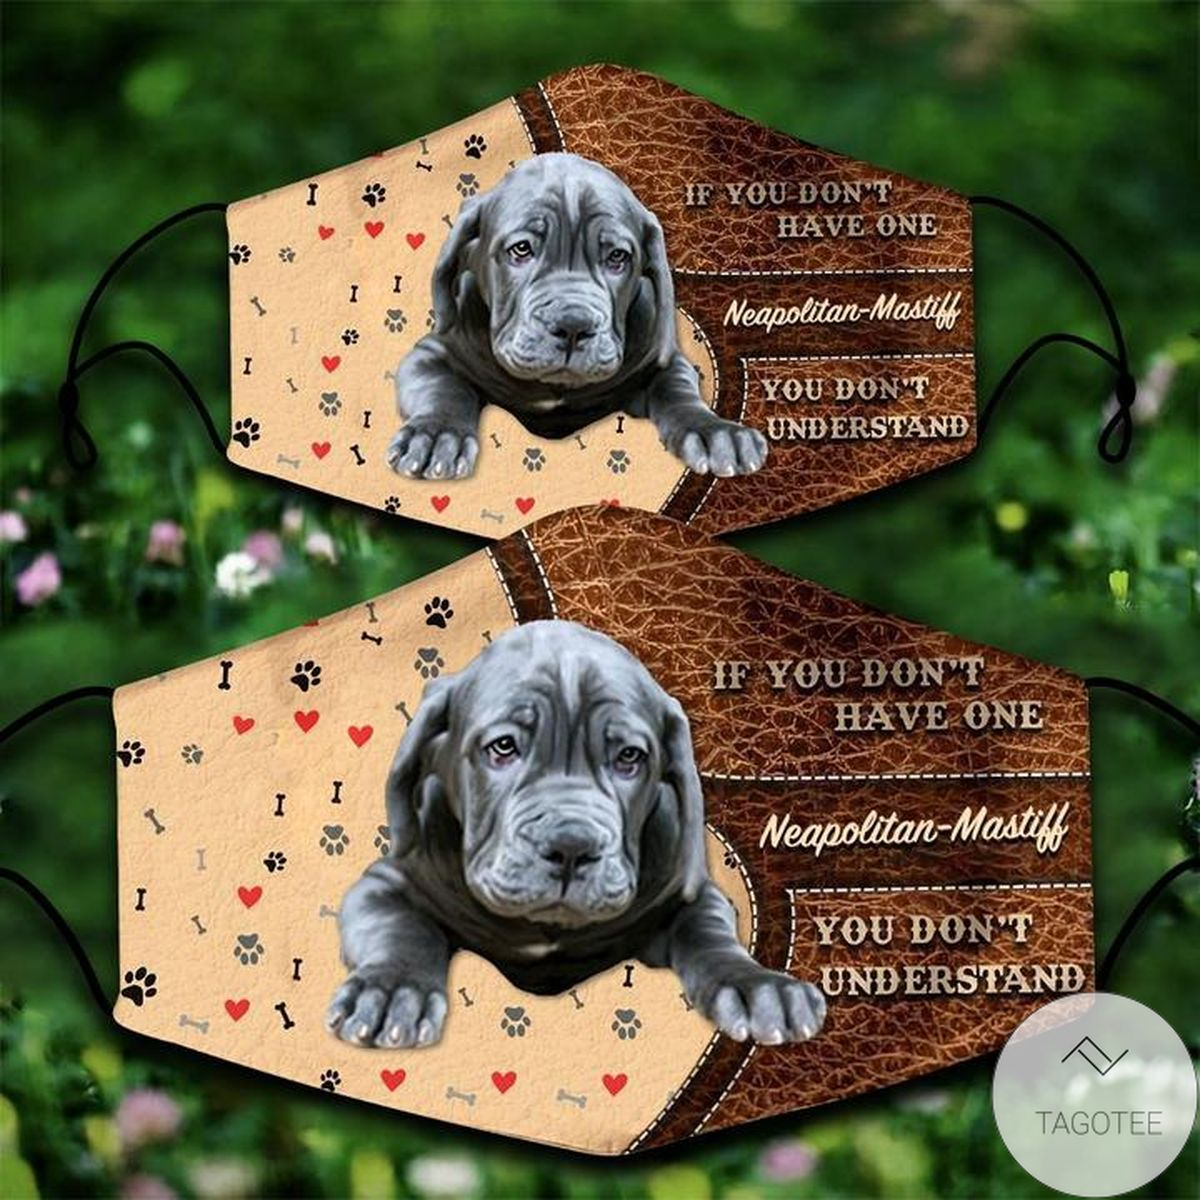 Neapolitan-Mastiff If You Don't Have One You Don't Understand Face Mask